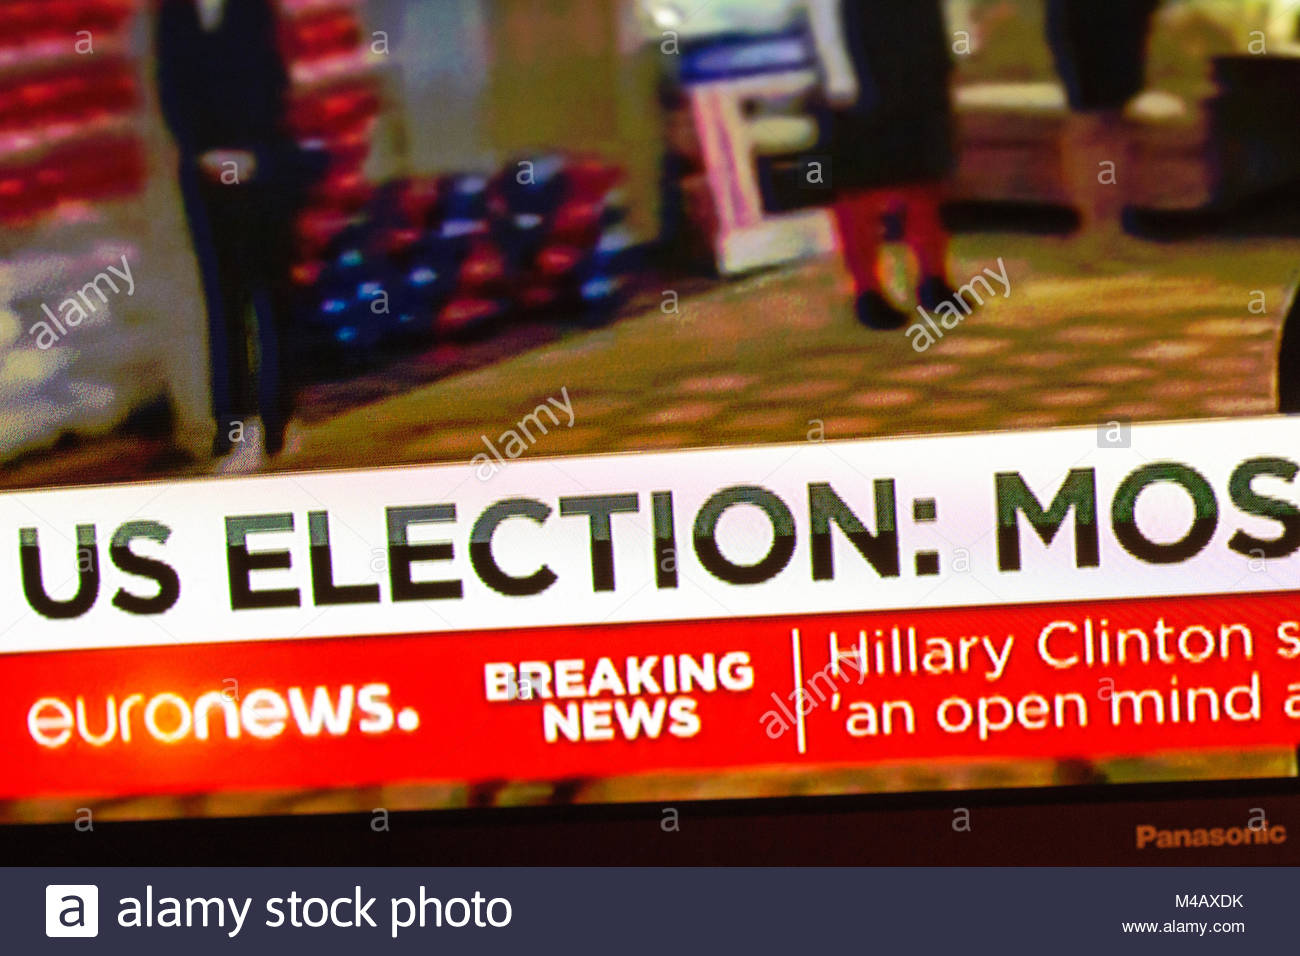 Breaking news US elections signs on Euronews TV - Stock Image